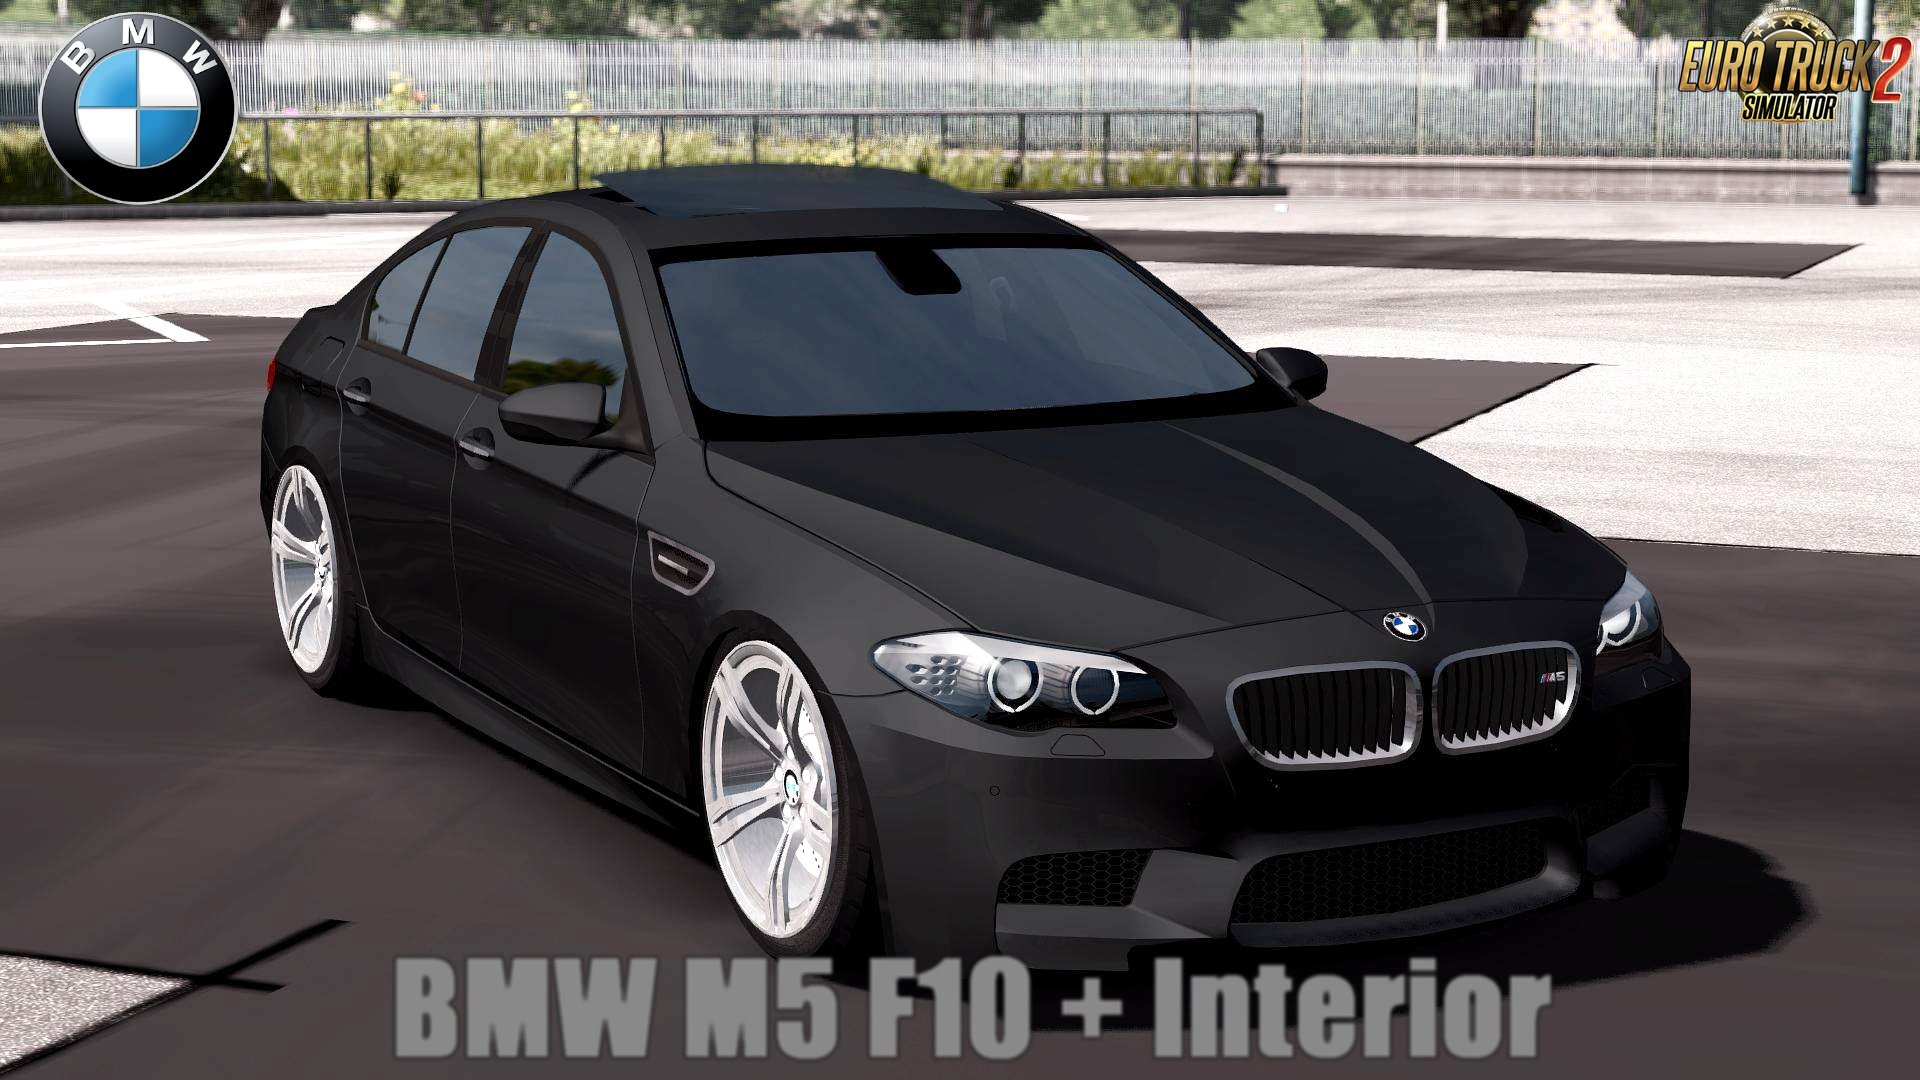 BMW M5 F10 + Interior v3.0 (Upgraded) (1.28.x)